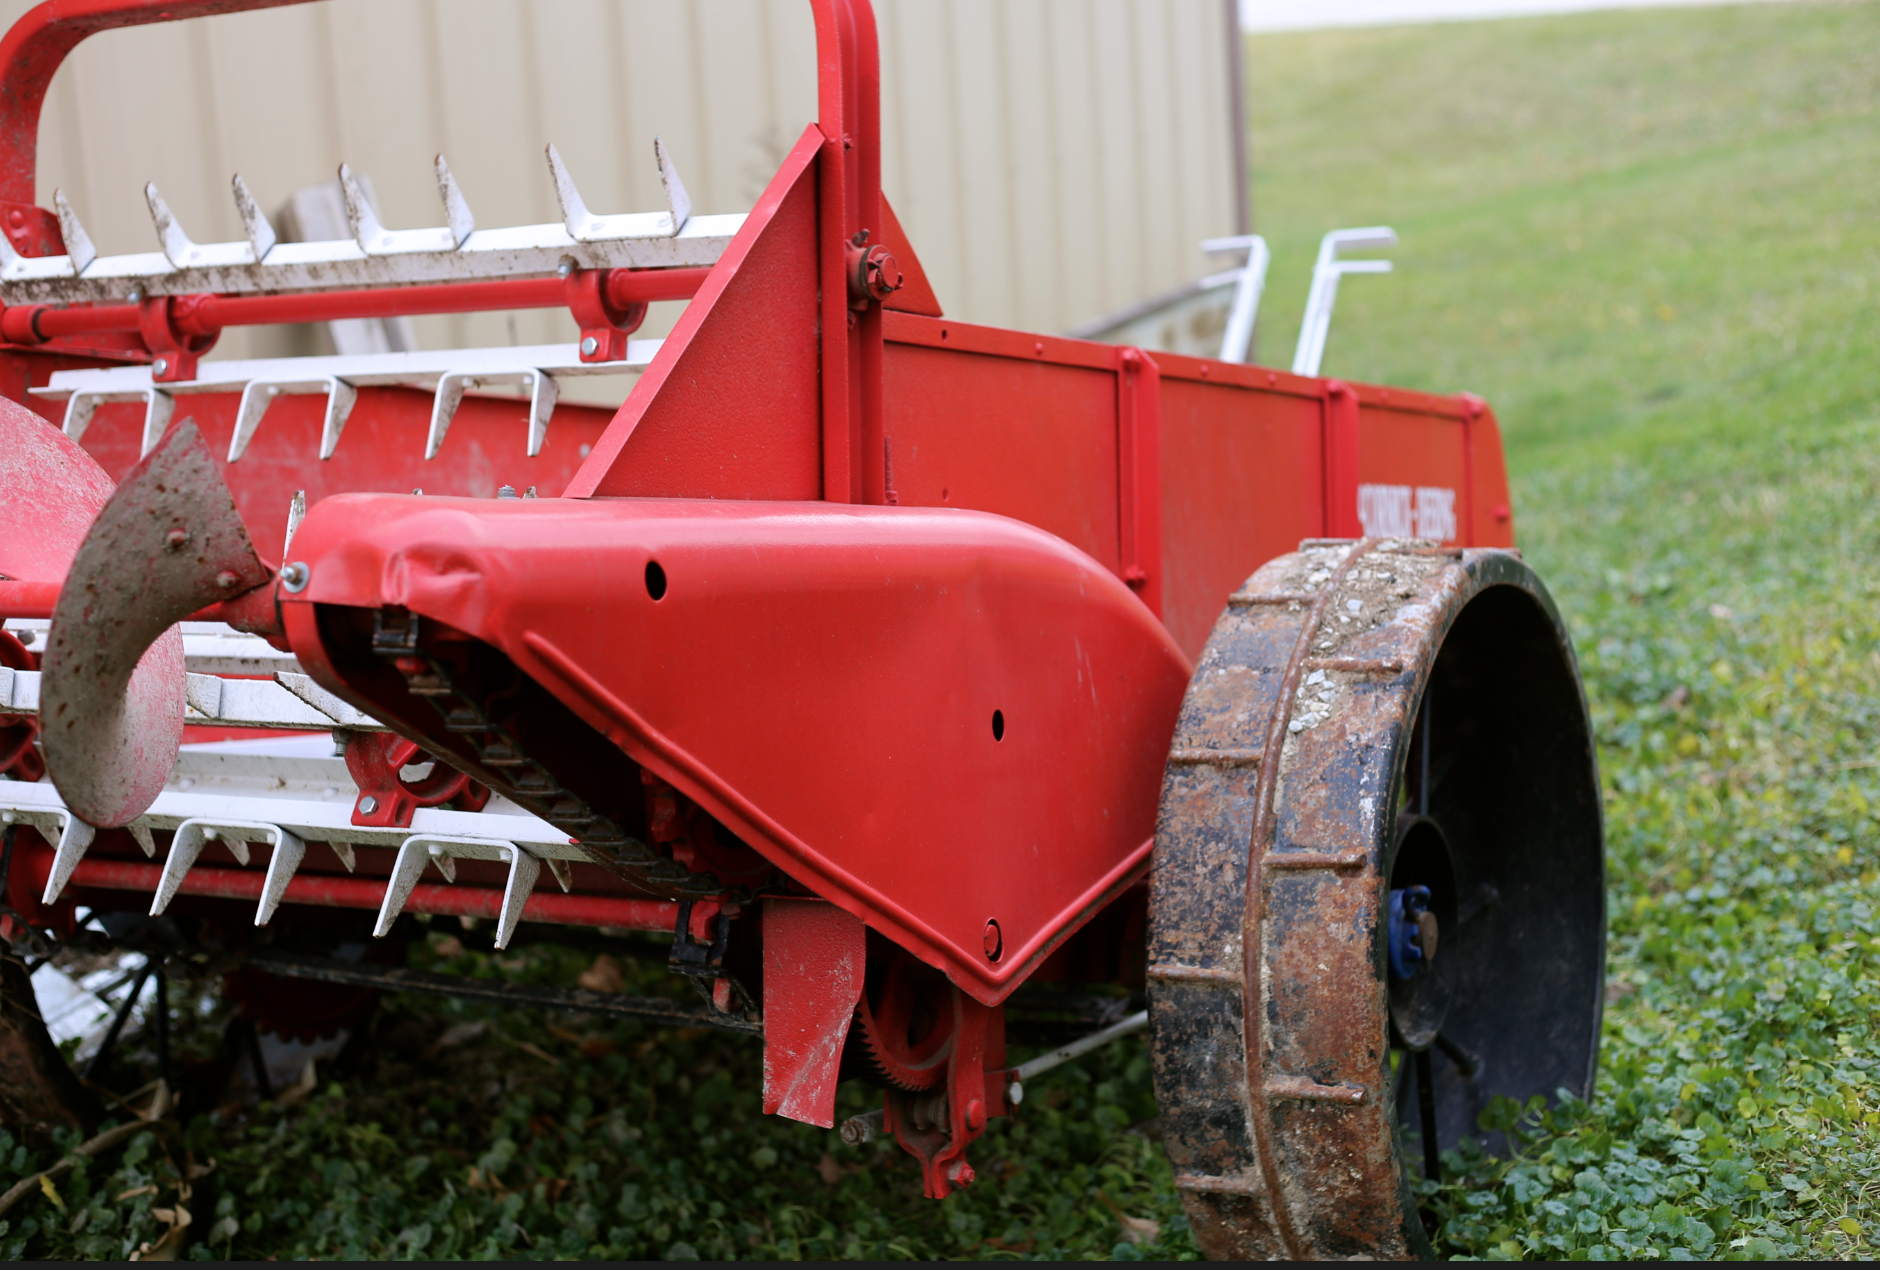 Check out the wheels on this vintage manure spreader, no air needed!